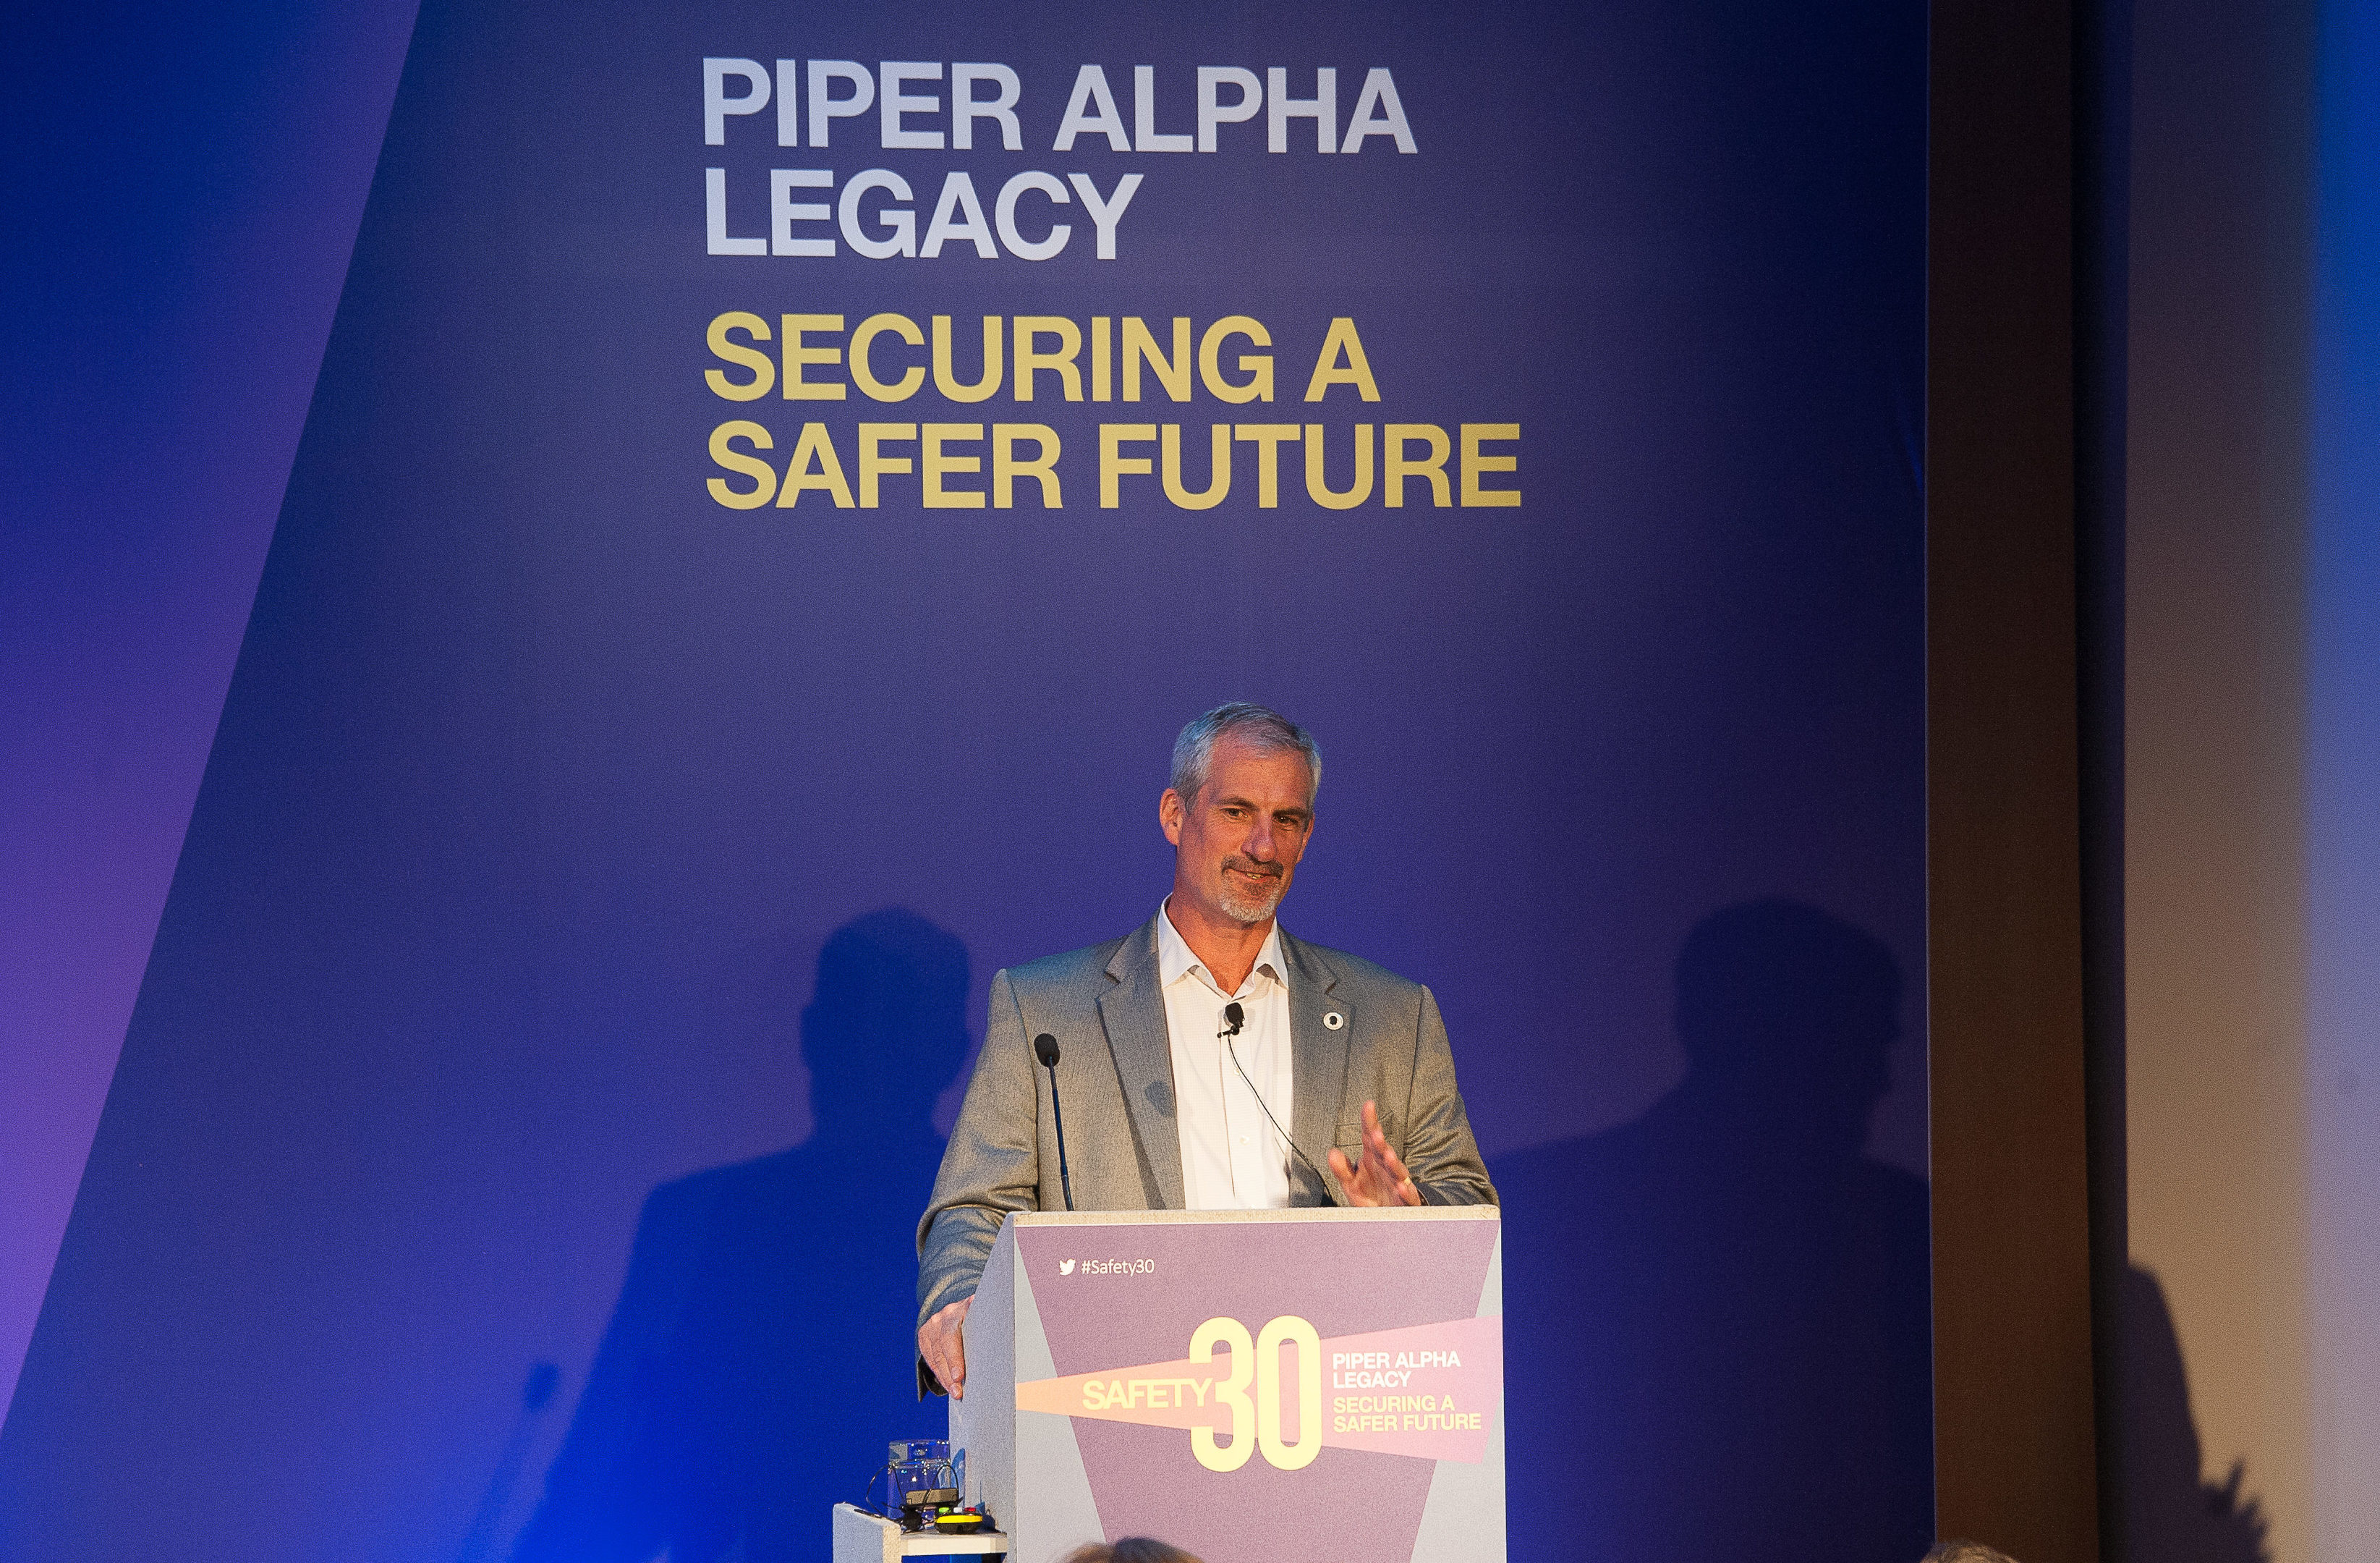 Steve Rae, operations manager of Well-Safe Solutions, speaking at the Safety 30 conference.